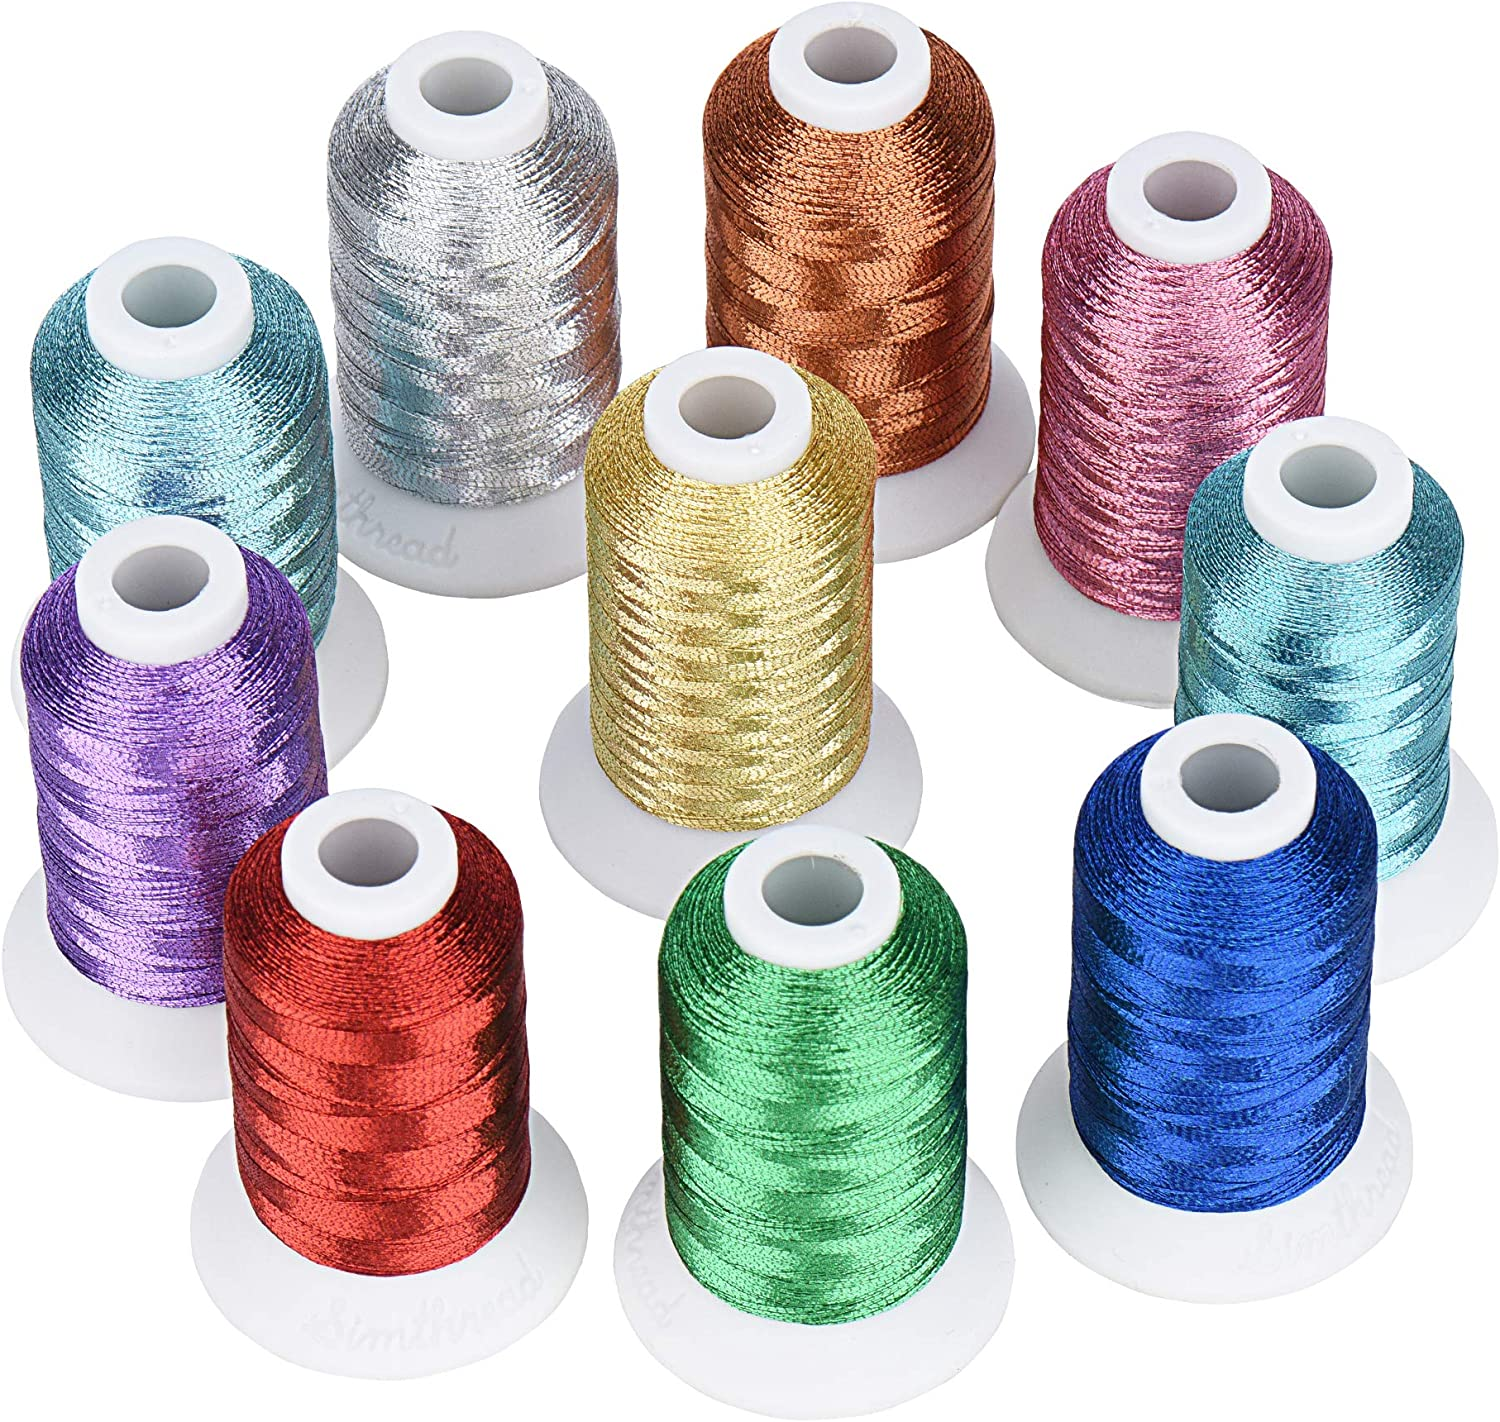 Simthread All items free shipping 10 Essential Colors Thread Machine Lowest price challenge Metallic Embroidery